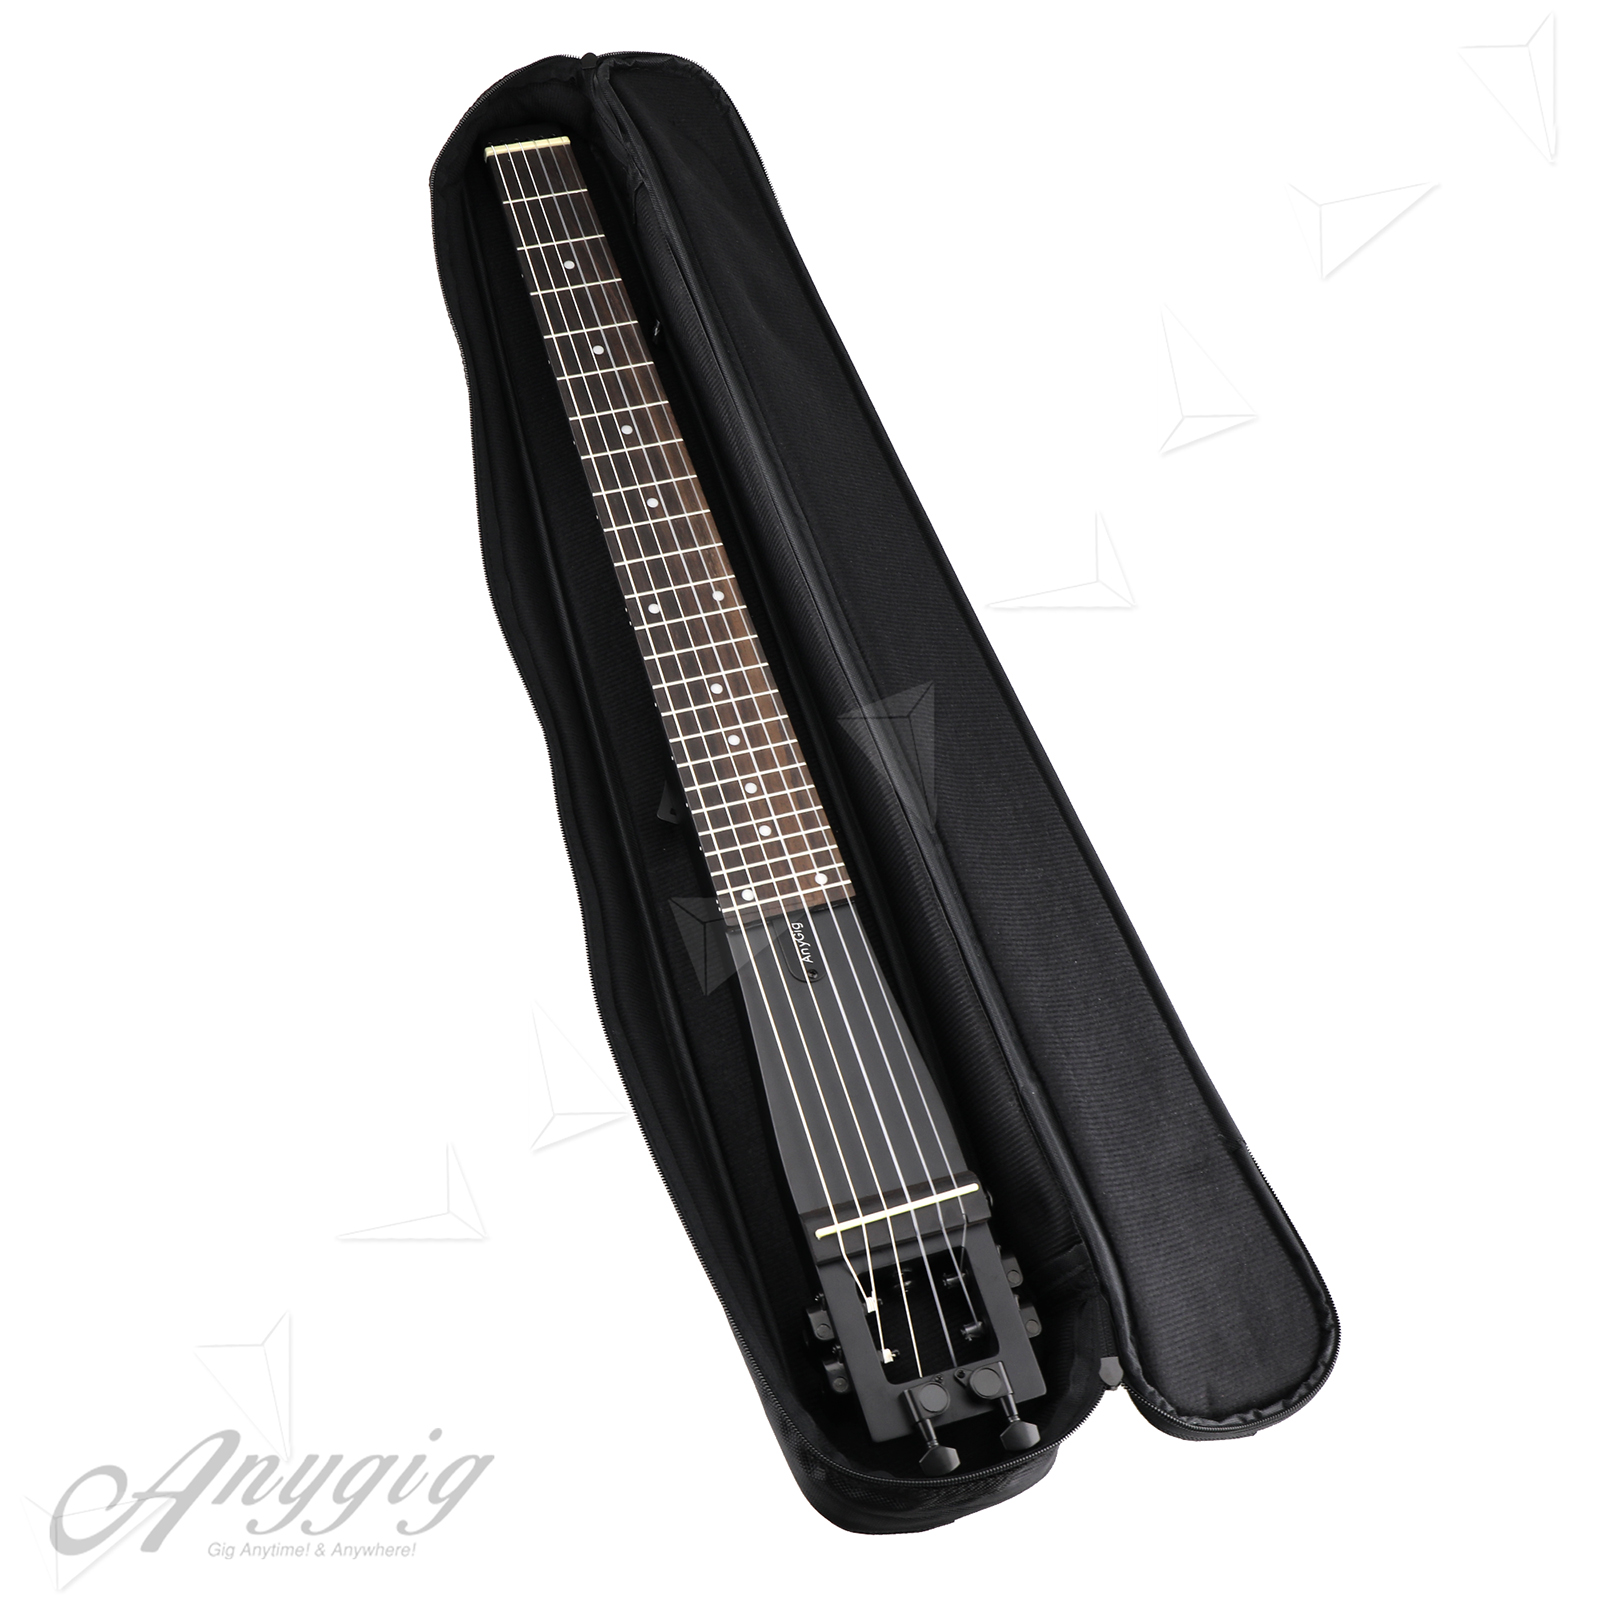 Anygig agn nylon string full scale protable travel small for Perfect scale pro reviews